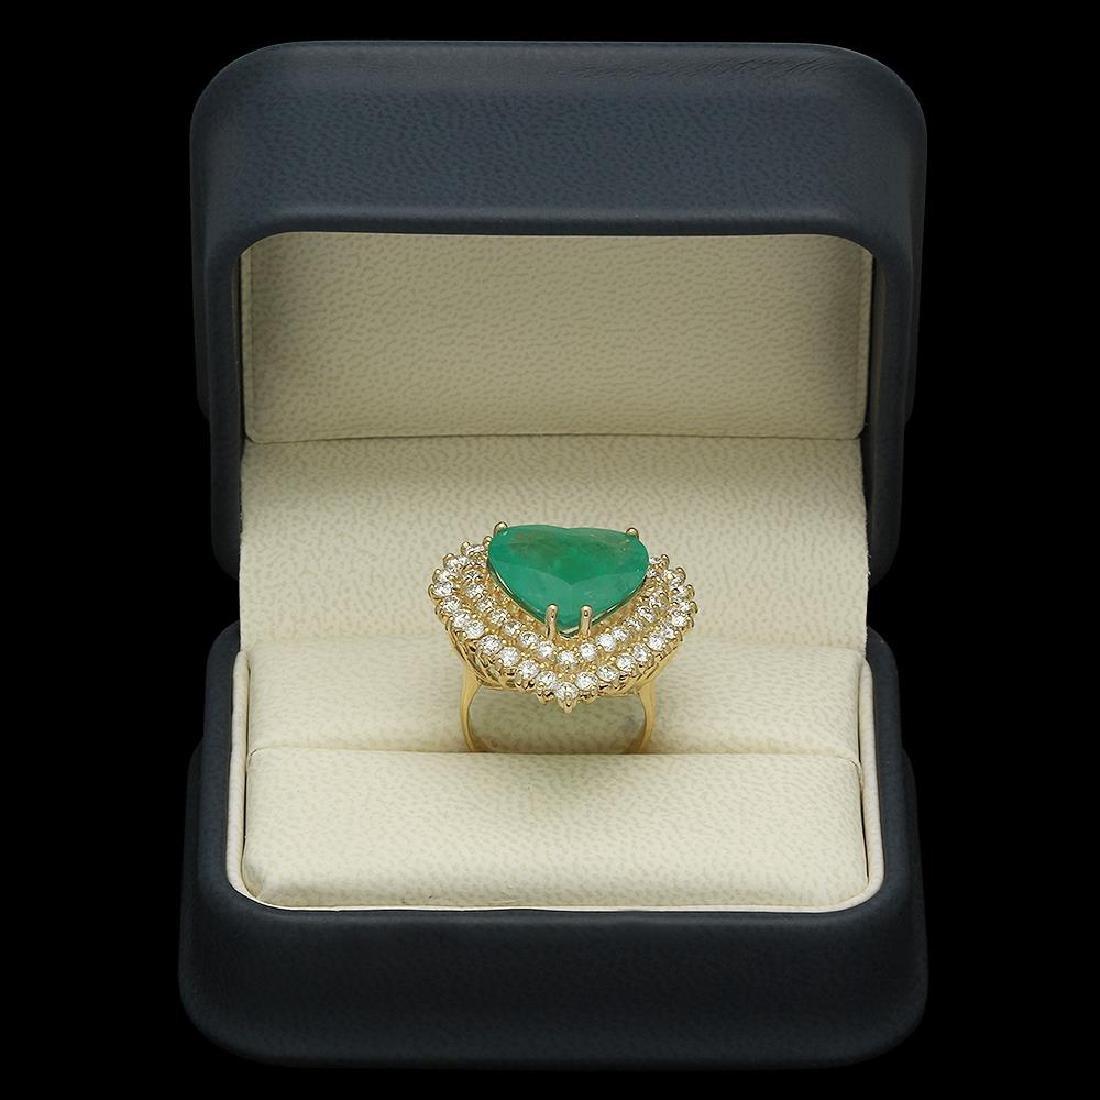 14K Gold 11.09ct Emerald 2.83ct Diamond Ring - 4